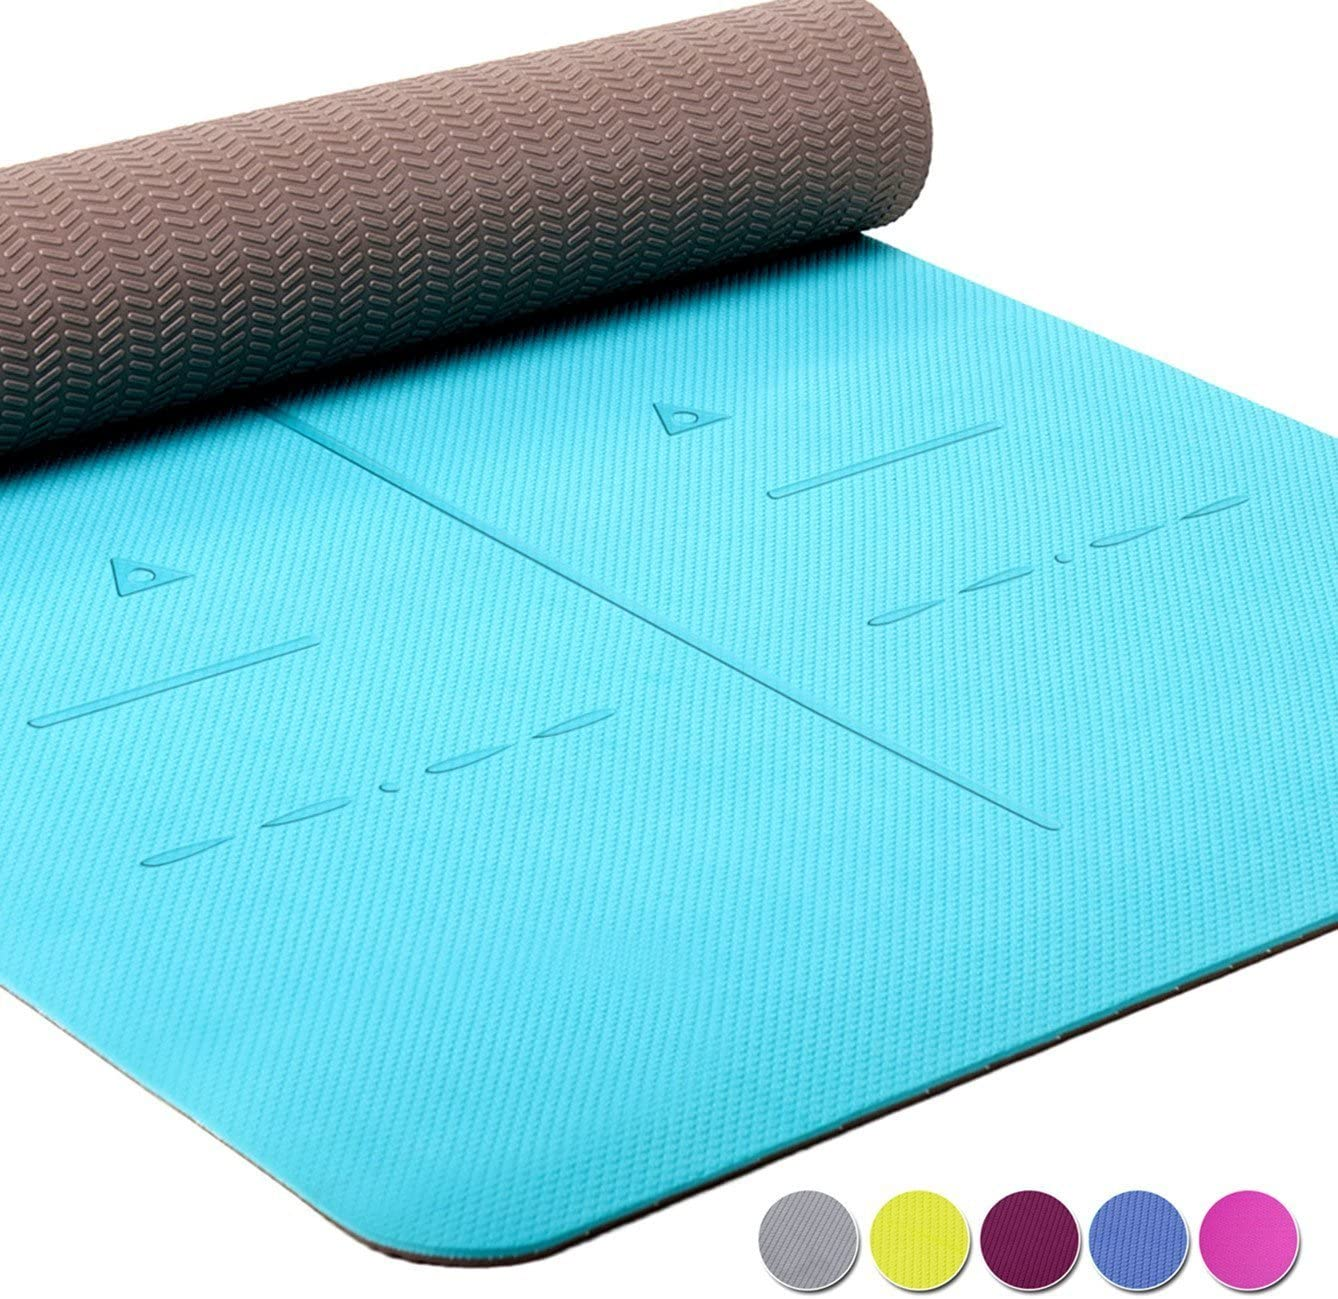 Heathyoga Eco Friendly Non Slip Yoga Mat, Body Alignment System, SGS Certified TPE Material – Textured Non Slip Surface and Optimal Cushioning,72 x 26 Thickness 1 4